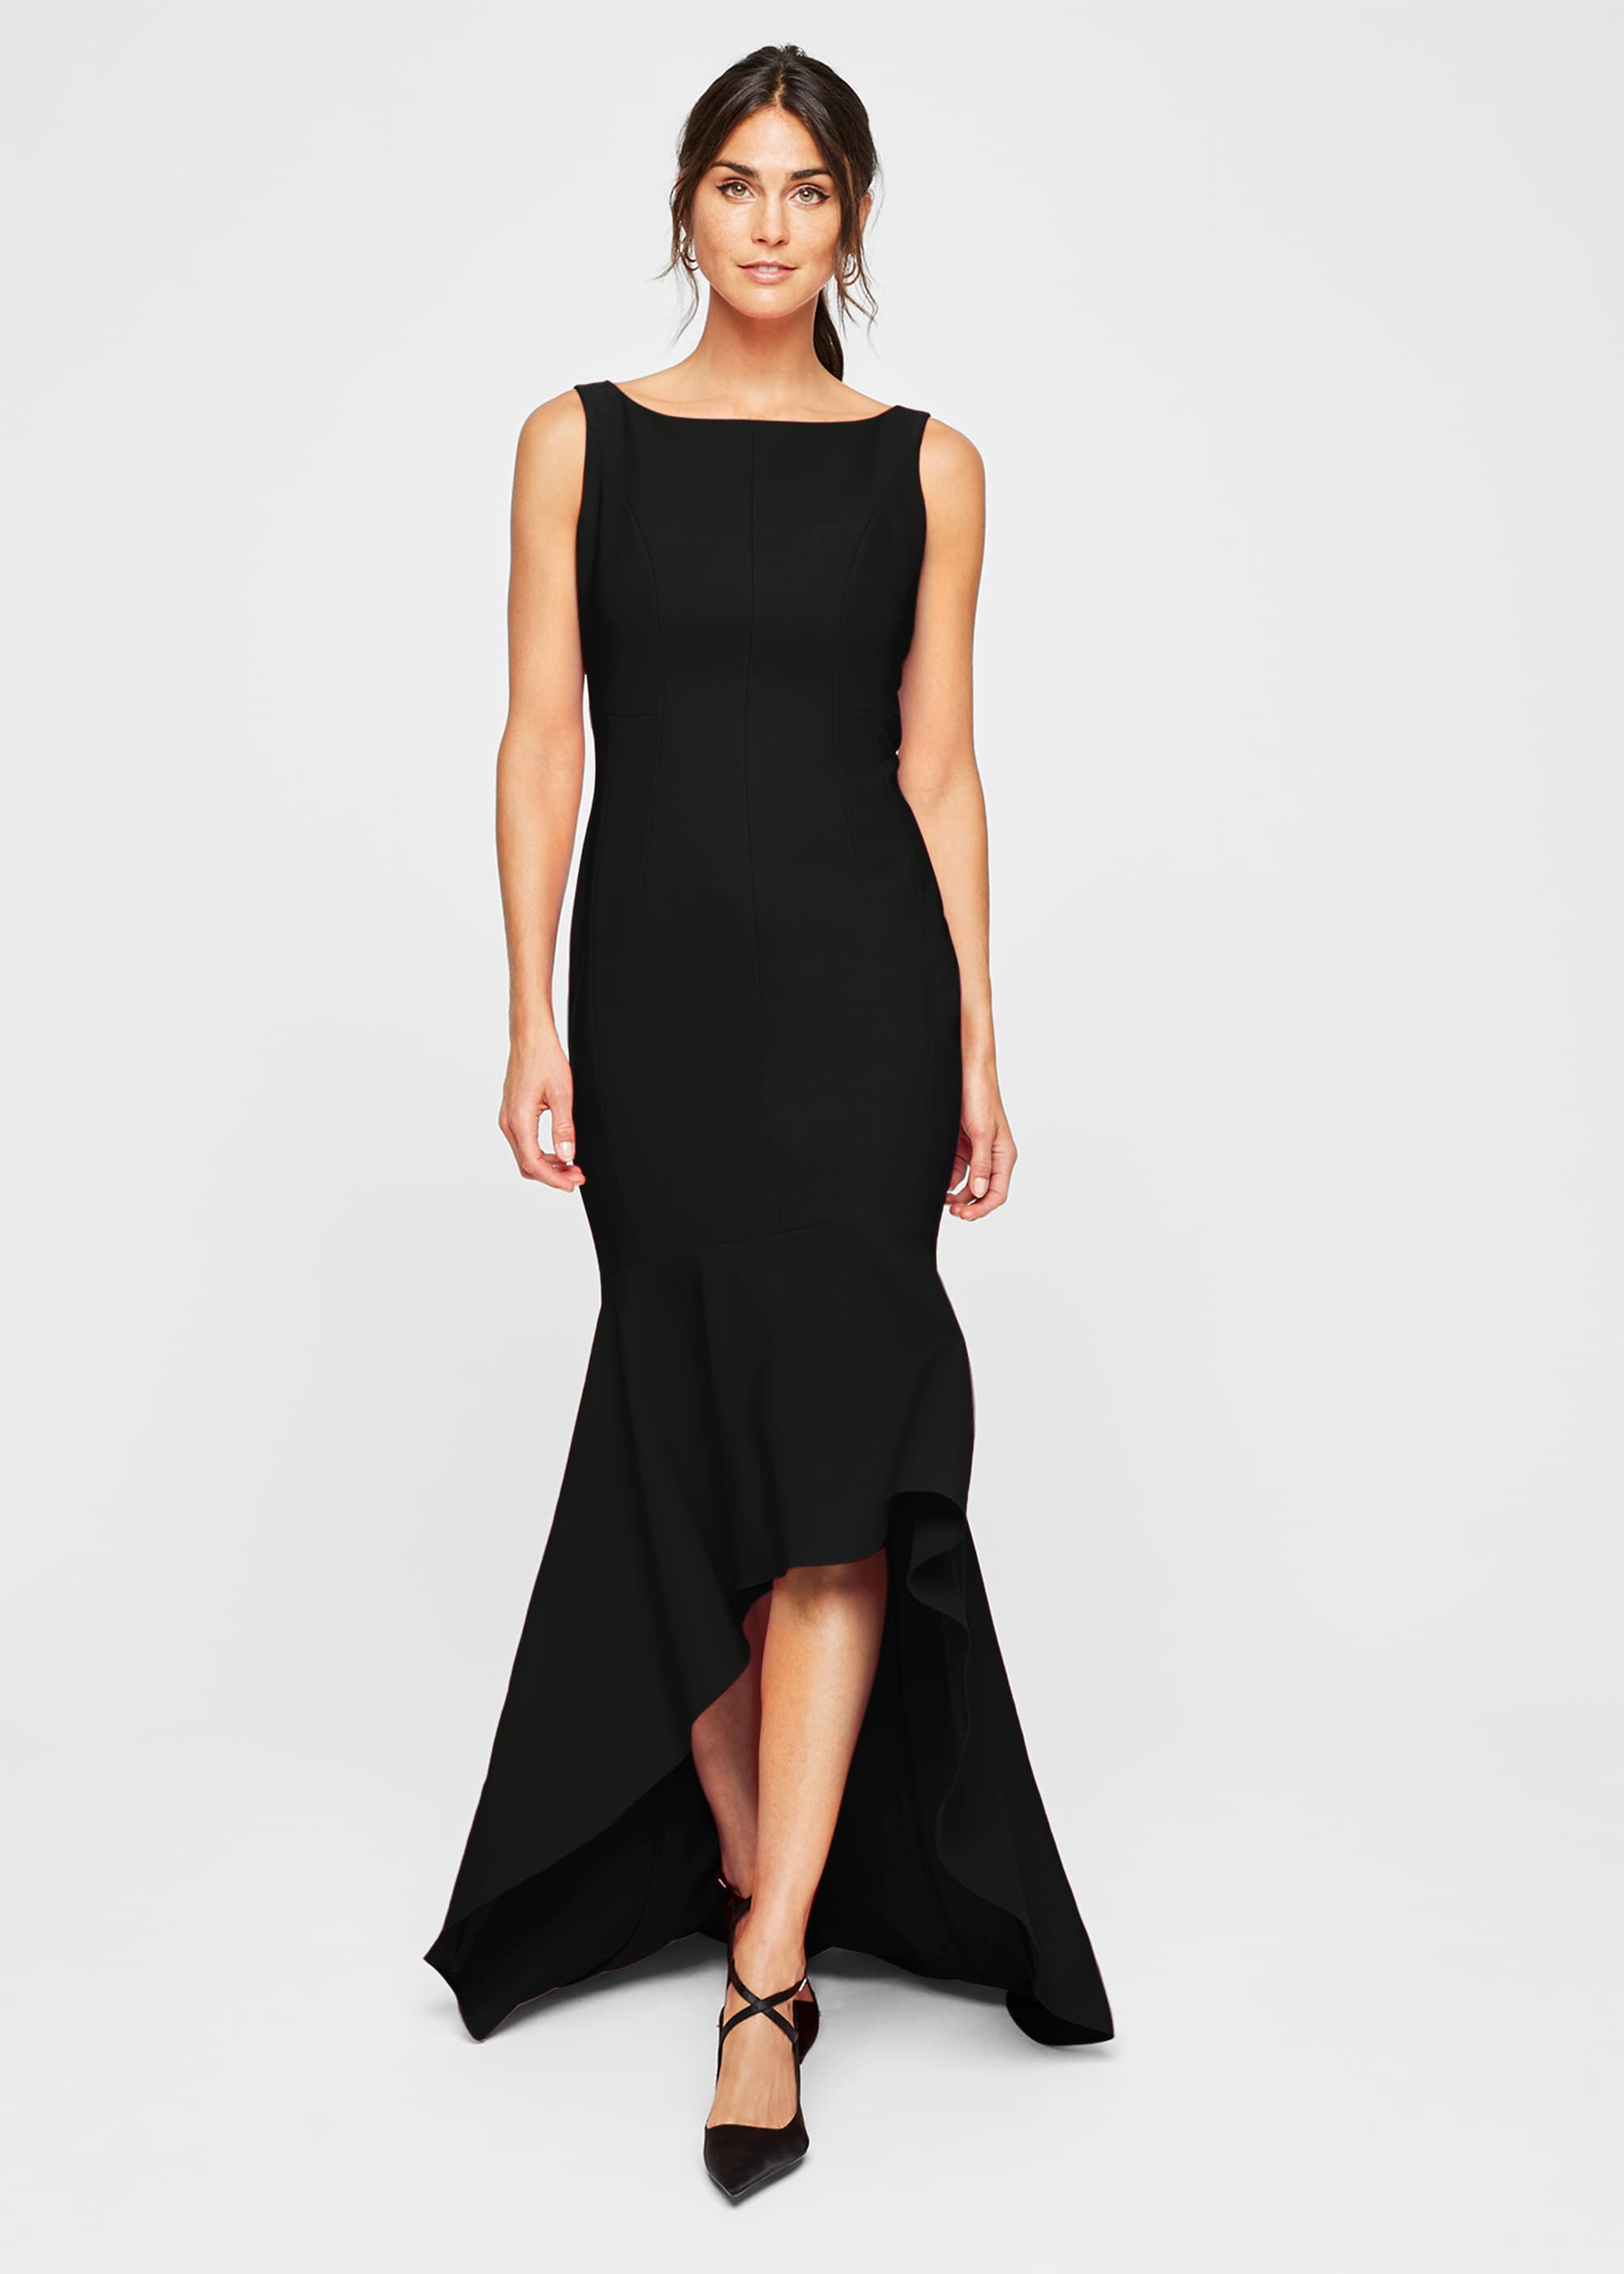 Damsel in a Dress Leela Maxi Dress, Black, Occasion Dress